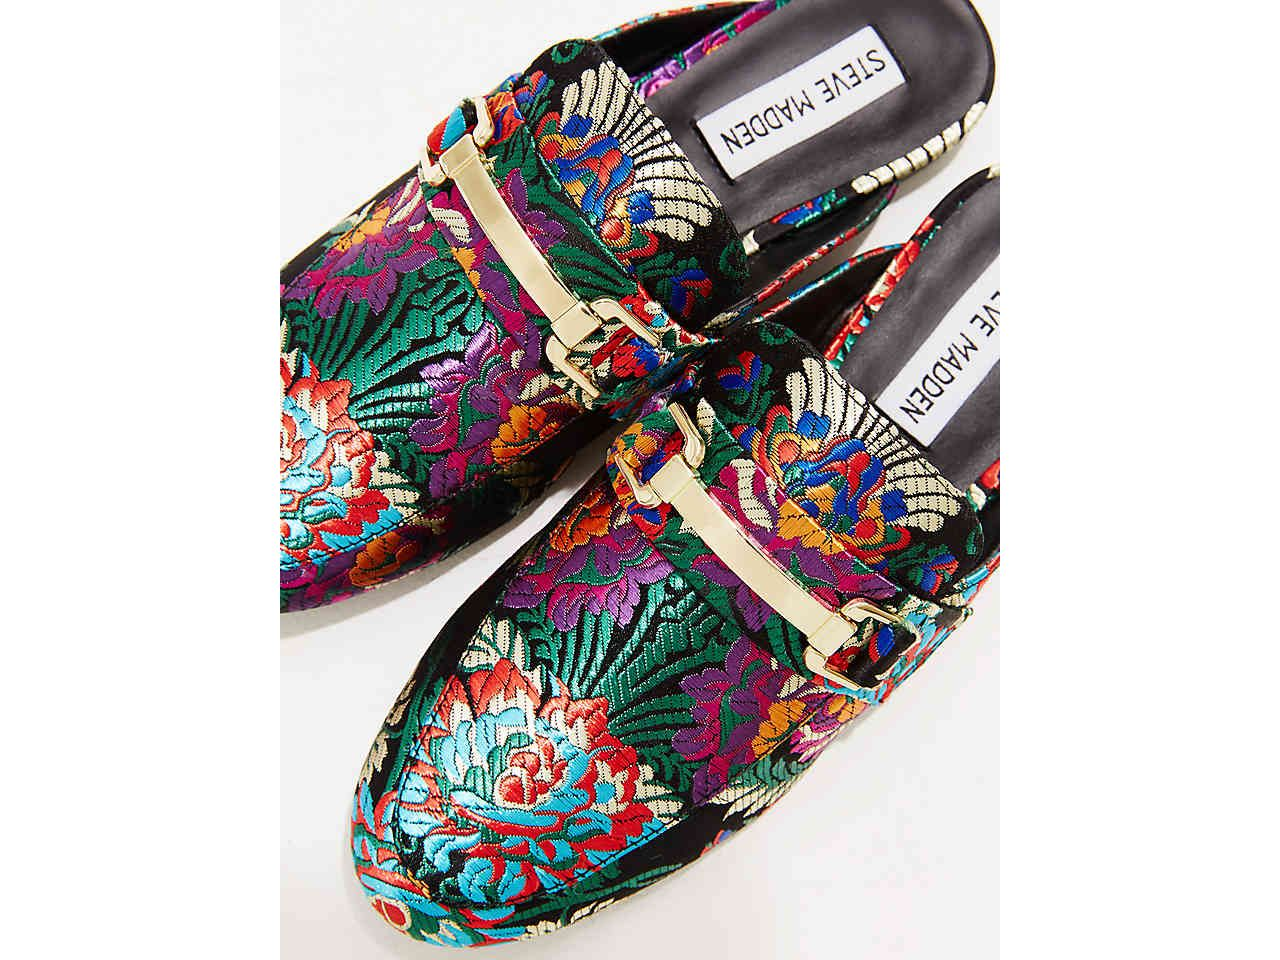 075a297929b Steve Madden Brightly Mule Women s Shoes